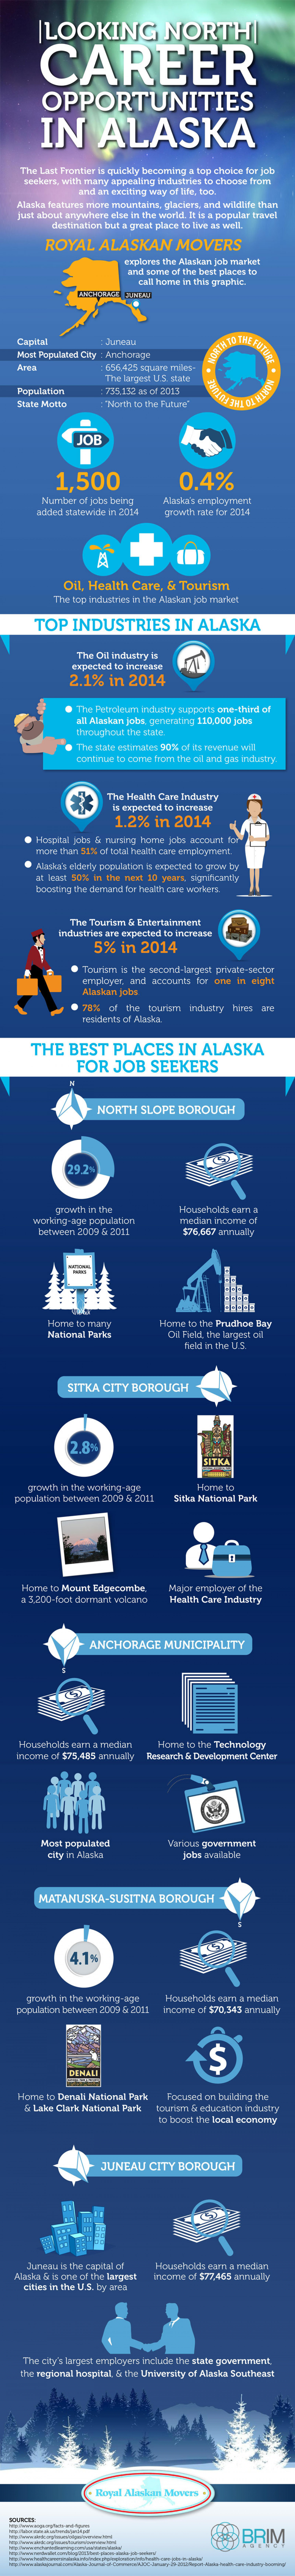 Looking North Career Opportunities In Alaska  Infographic